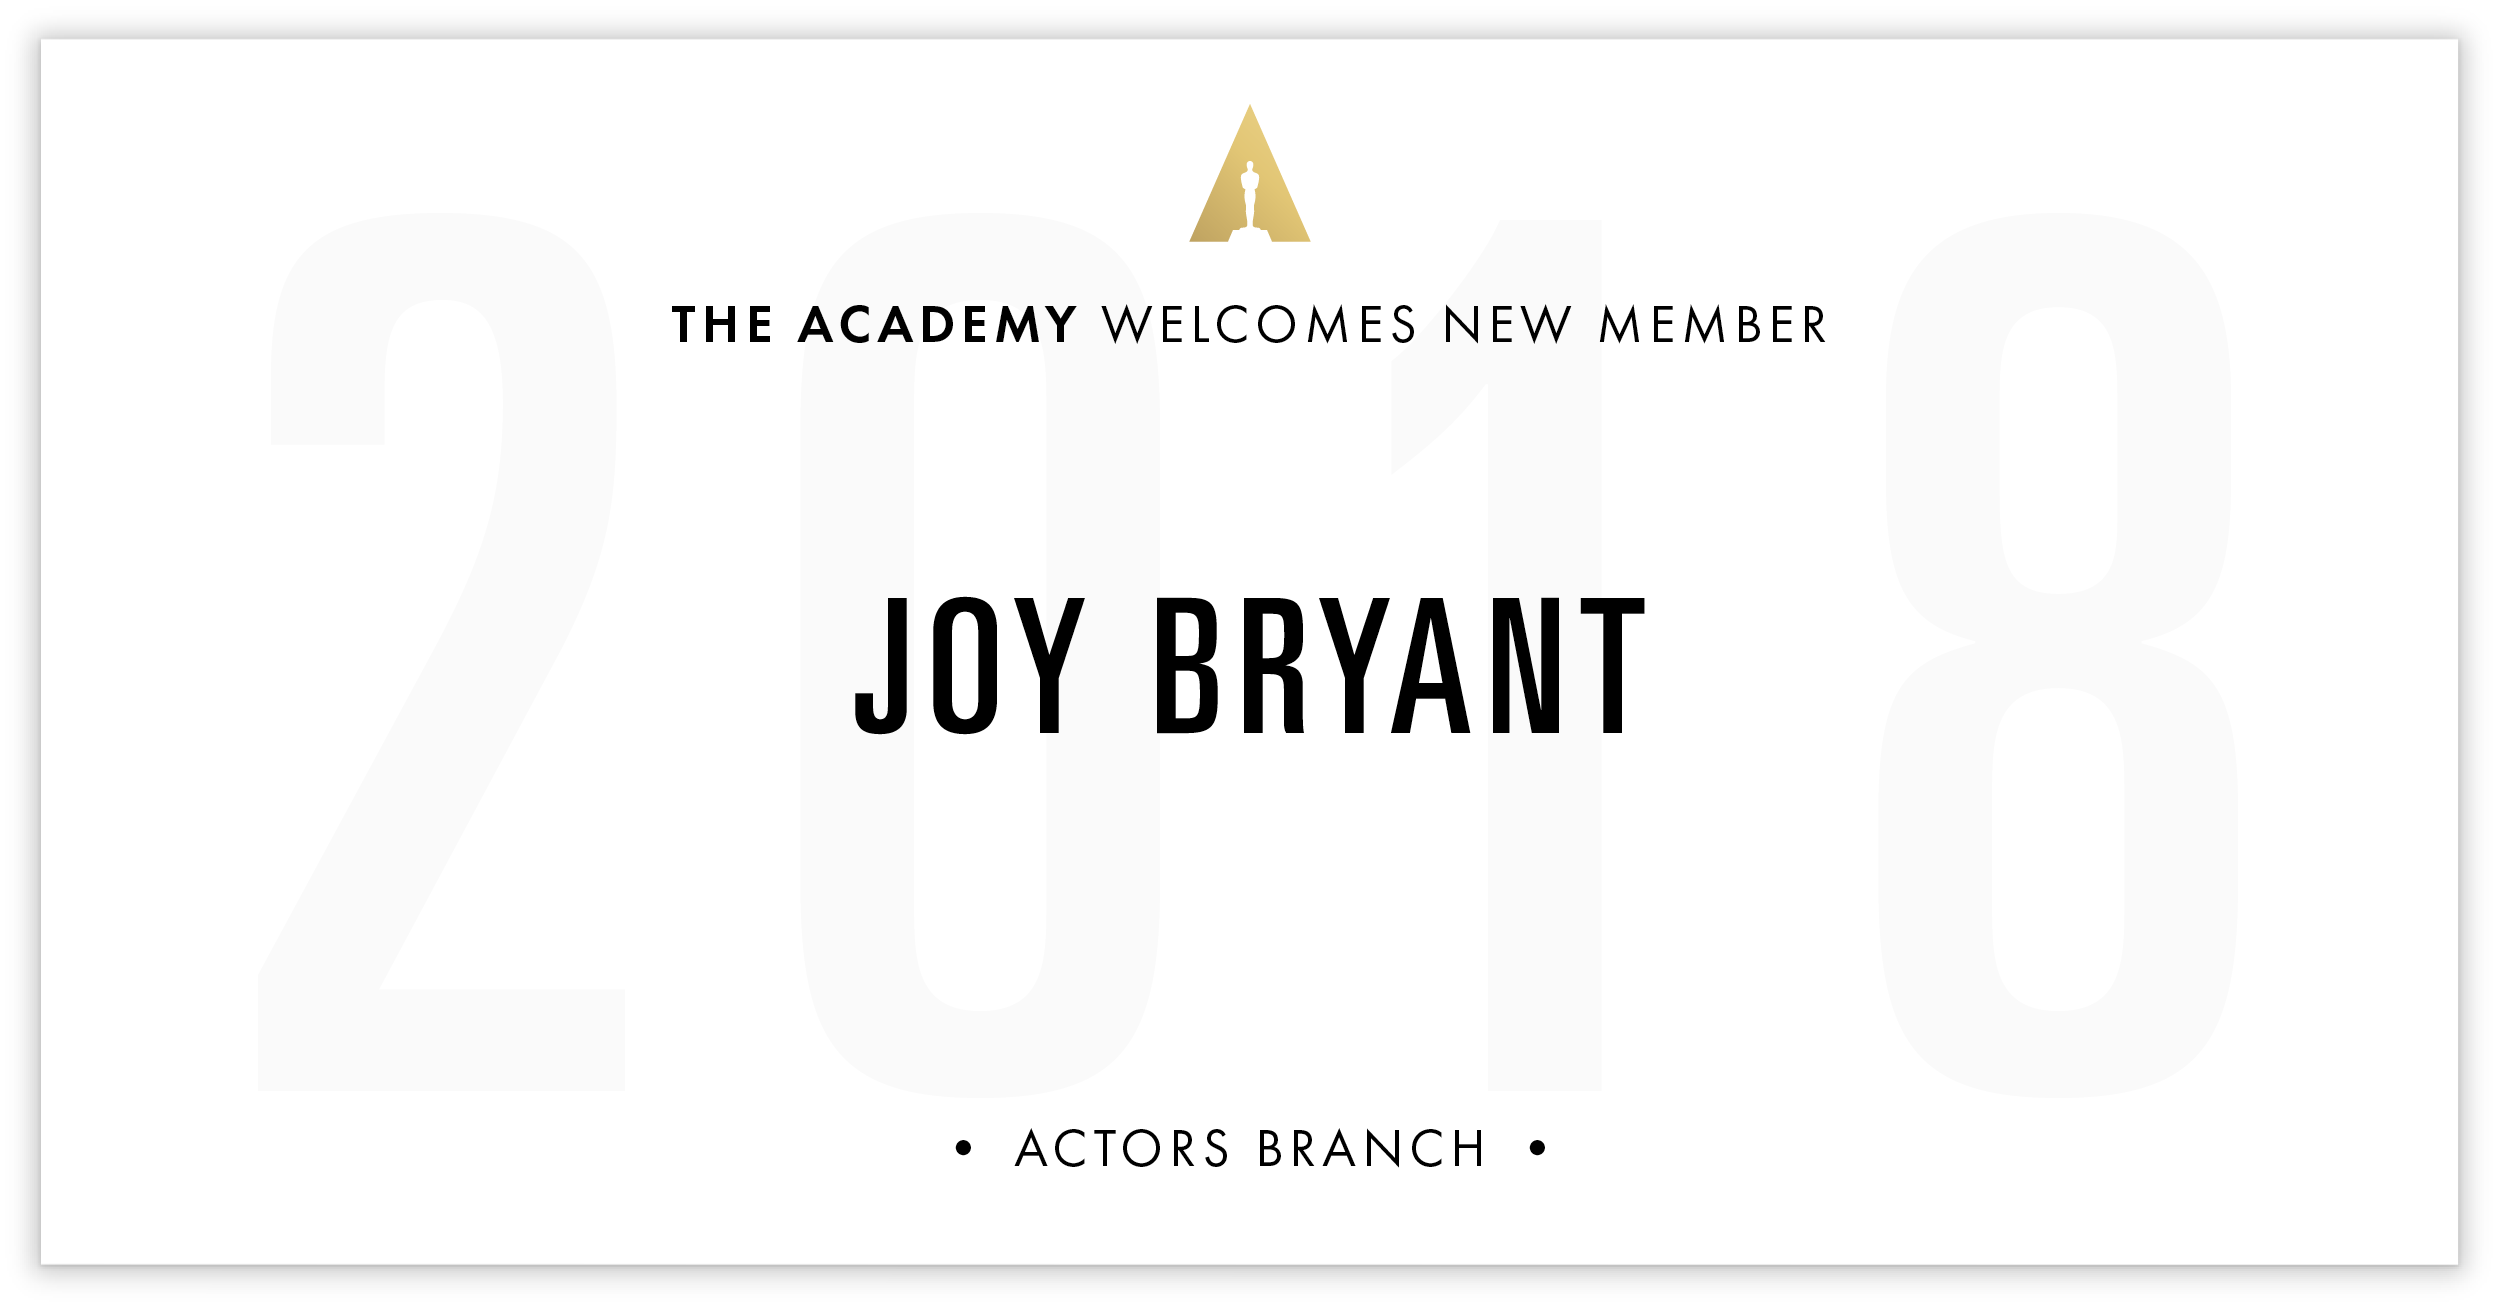 Joy Bryant is invited!